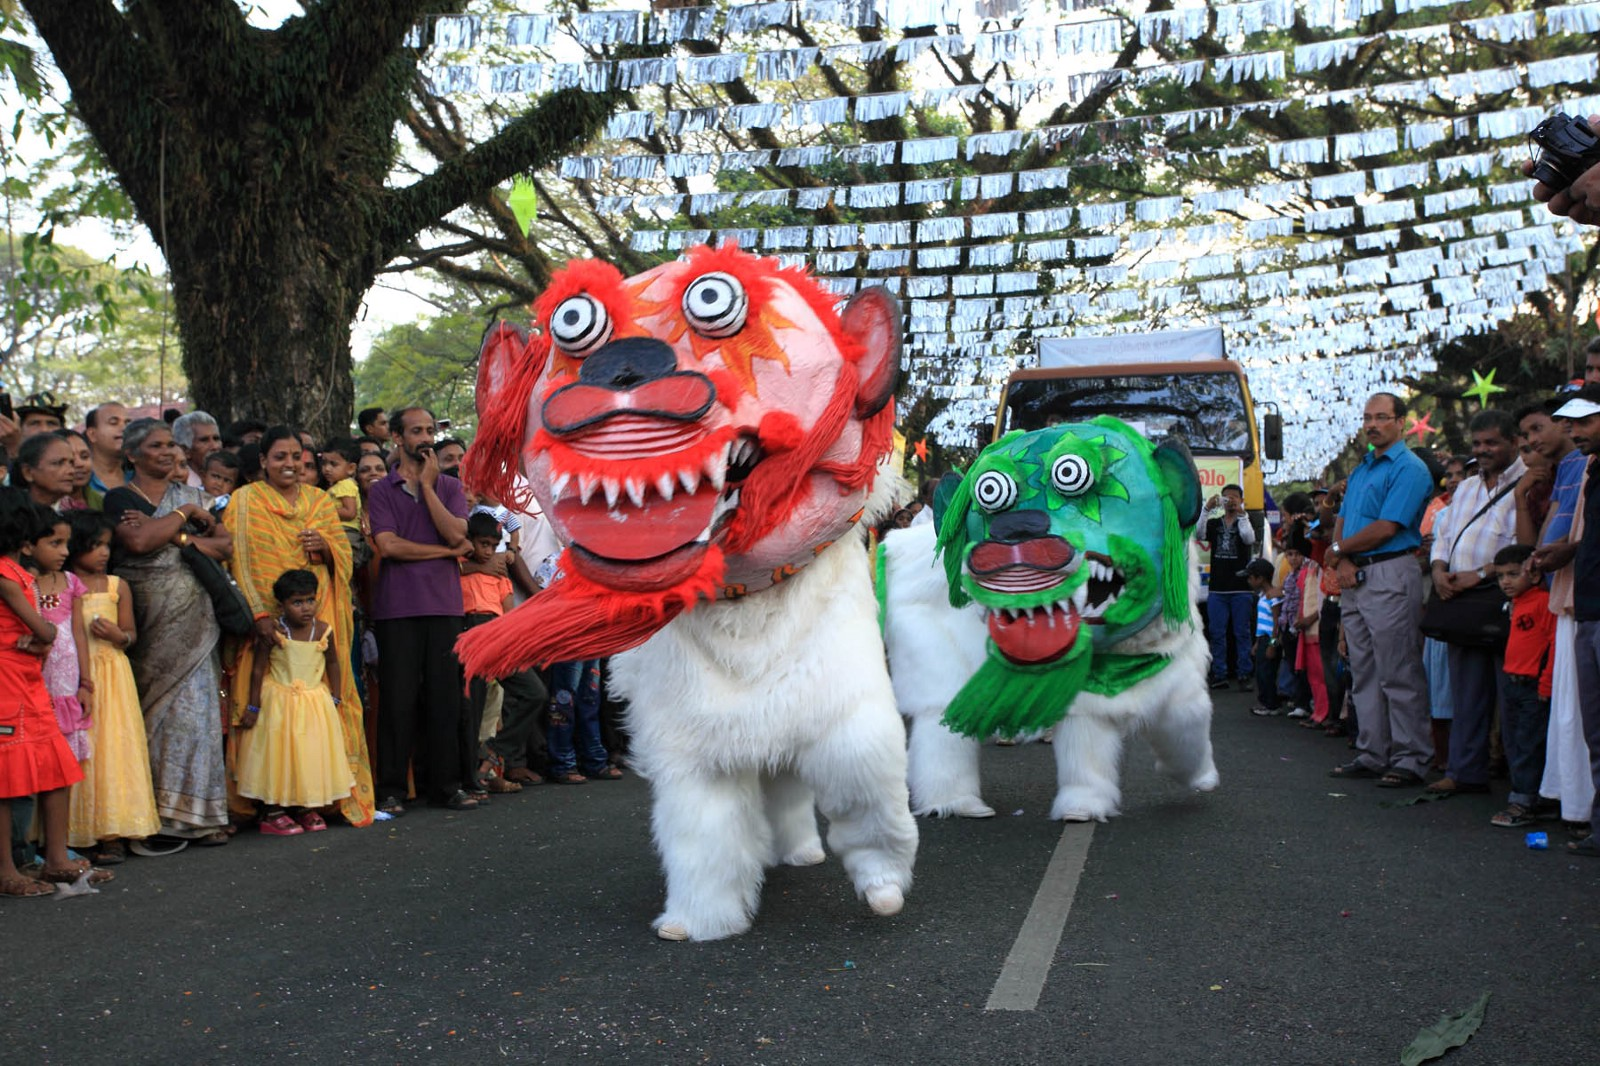 Cochin hosts a carnival every year in the last week of December